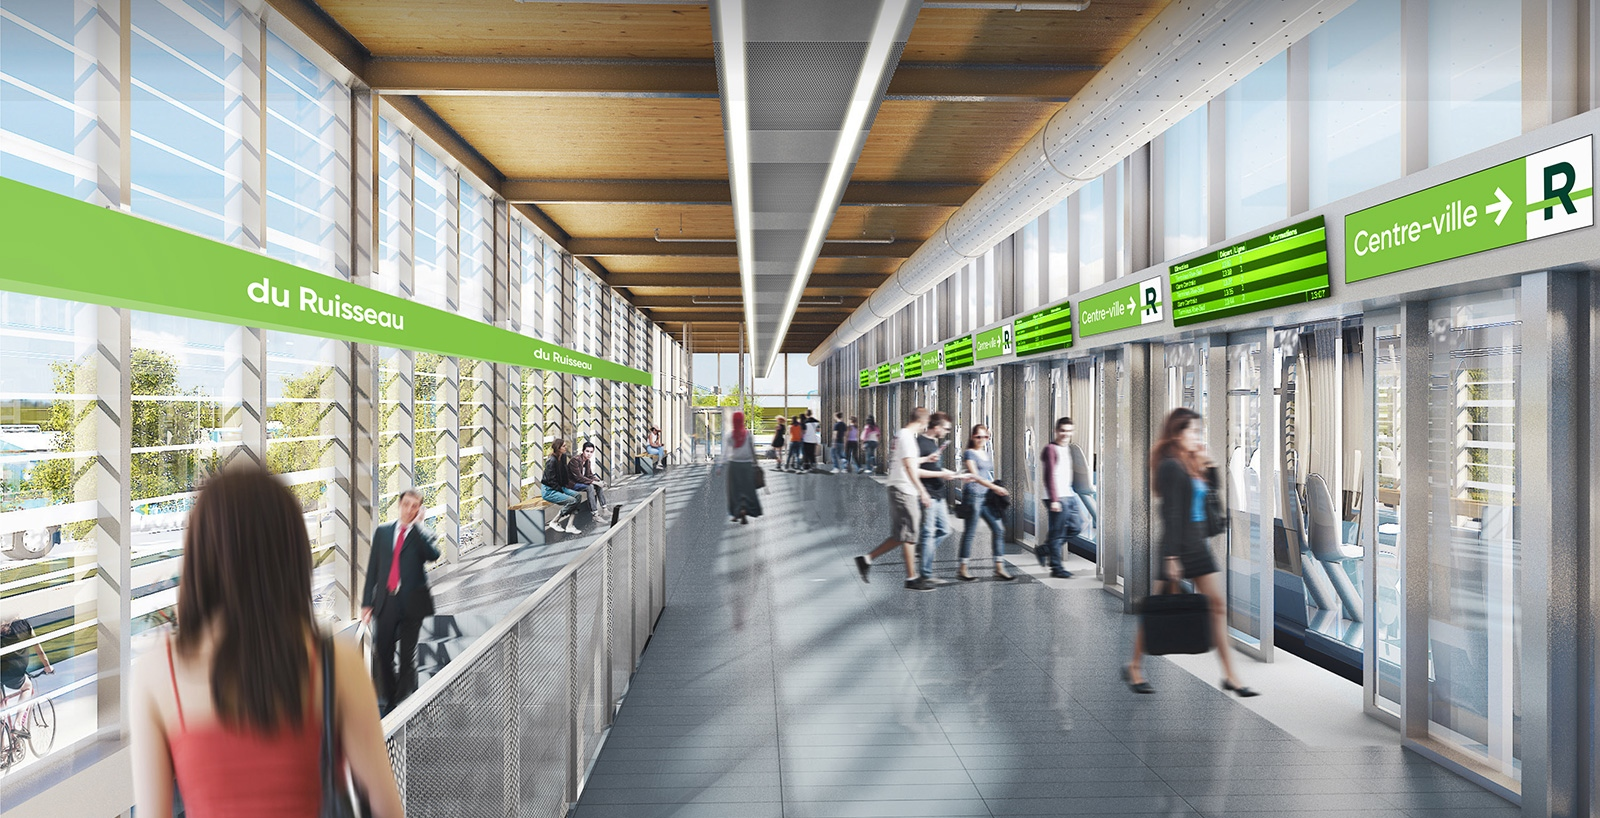 This is what Mont-Royal's REM electric train station will look like (RENDERINGS)